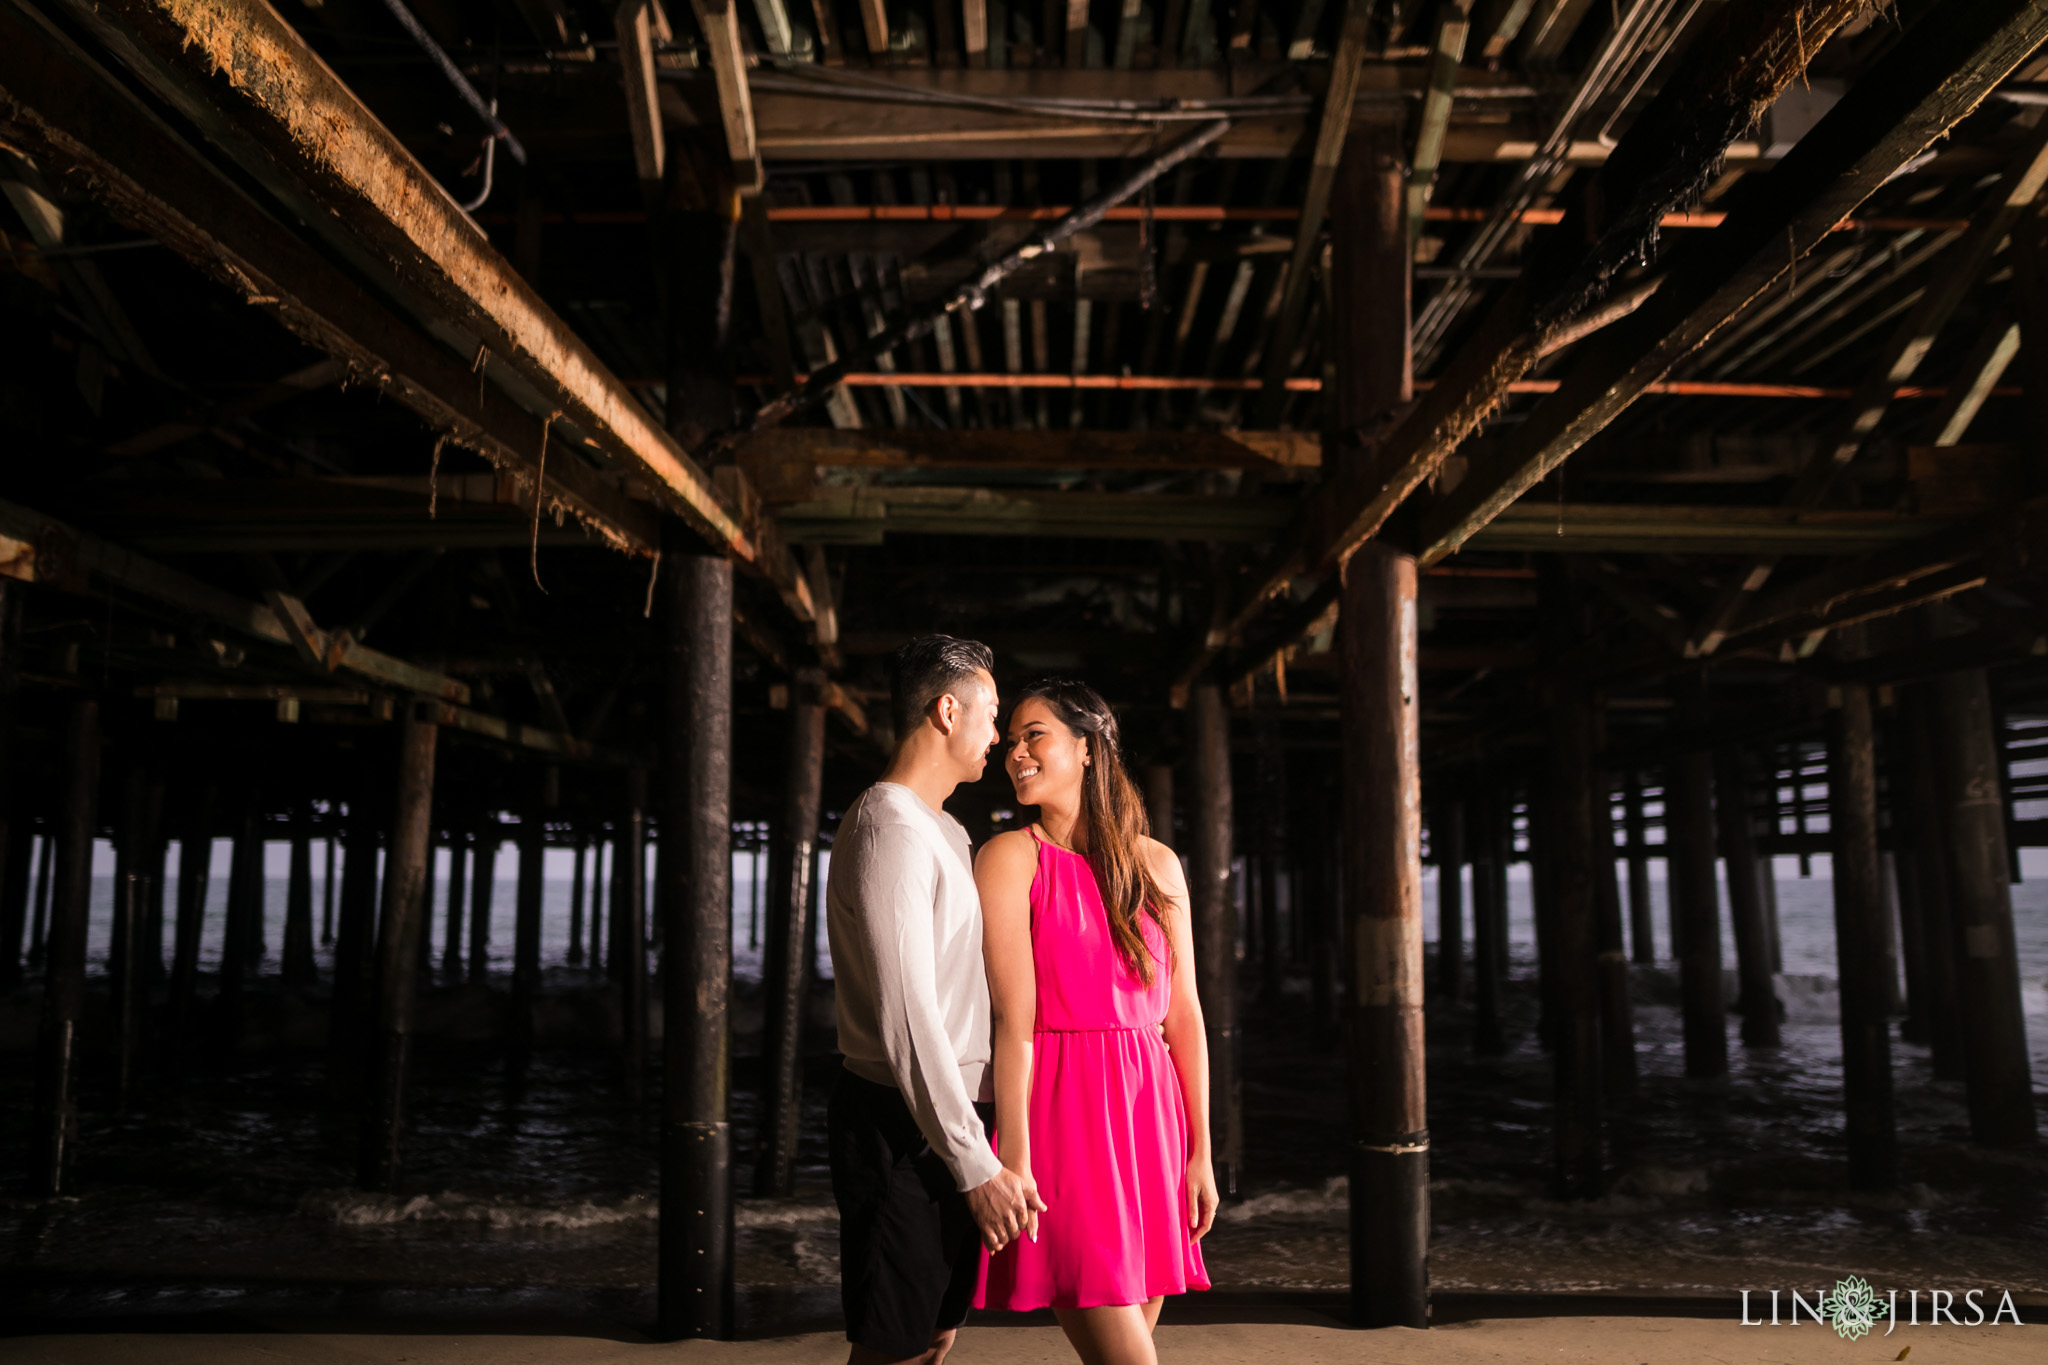 06 santa monica pier engagement photography